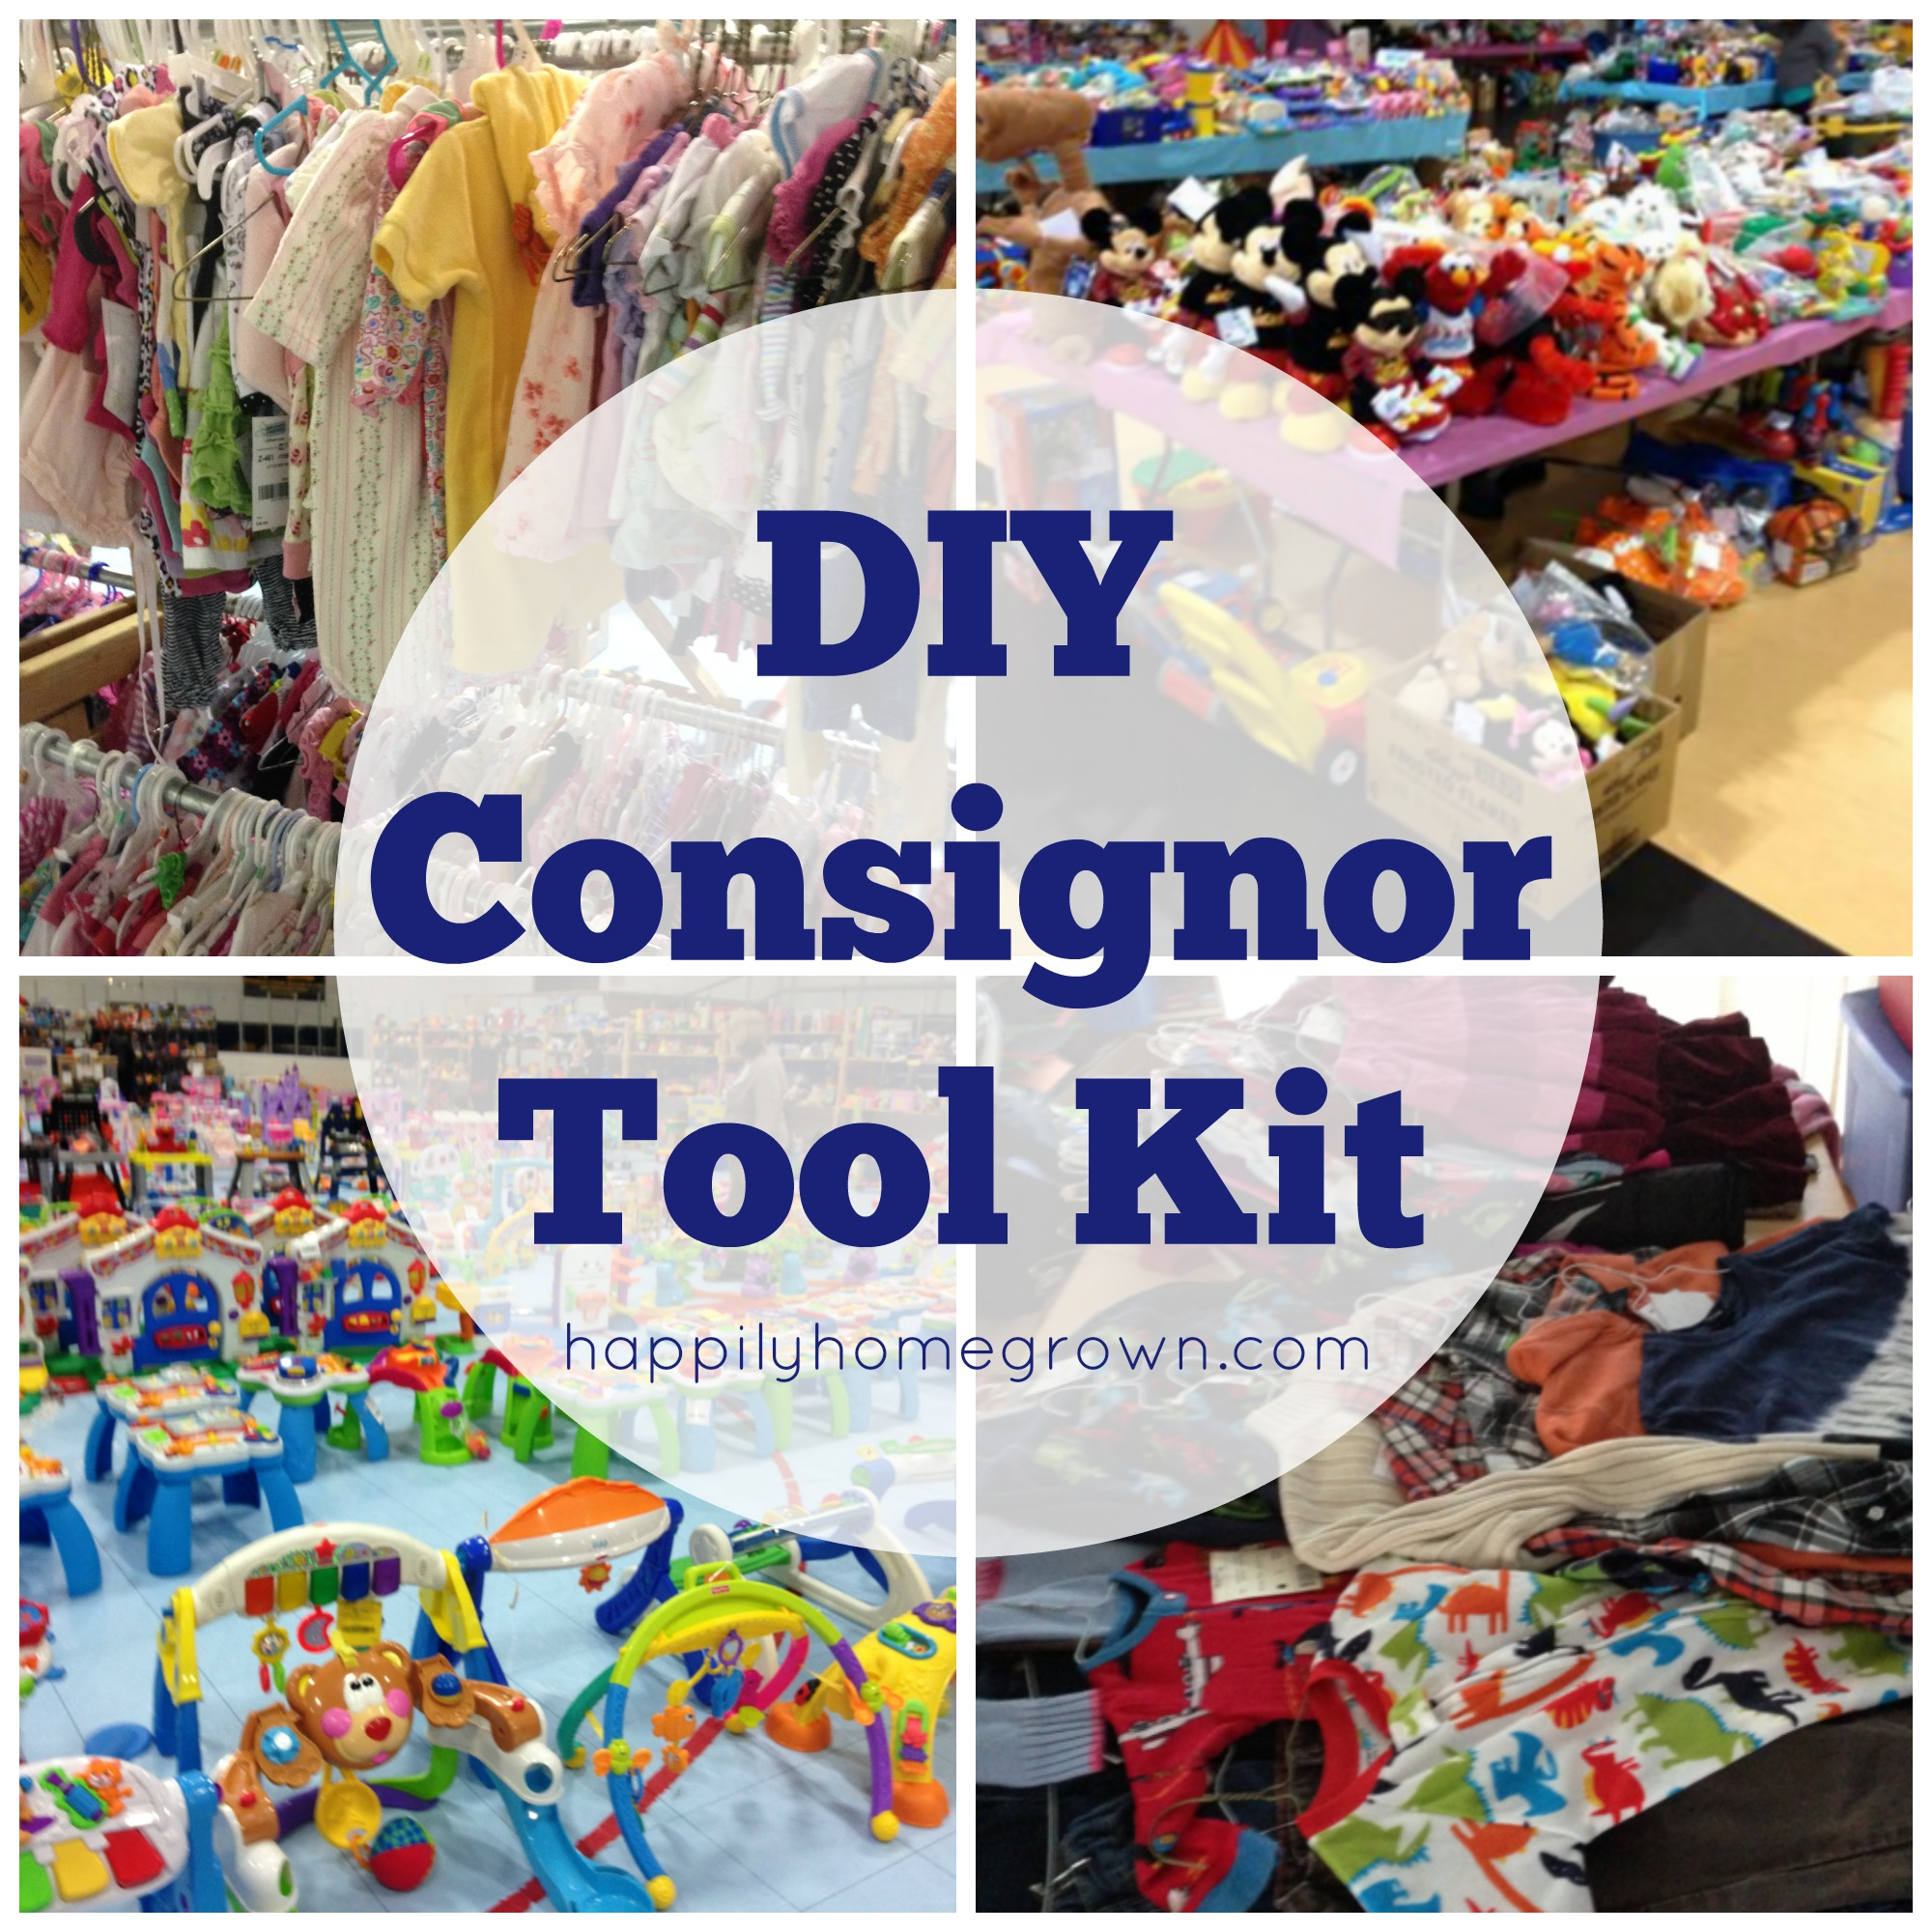 By creating your own consignor tool kit, you will have all of the items you require at your finger tips ready to go each consignment season!